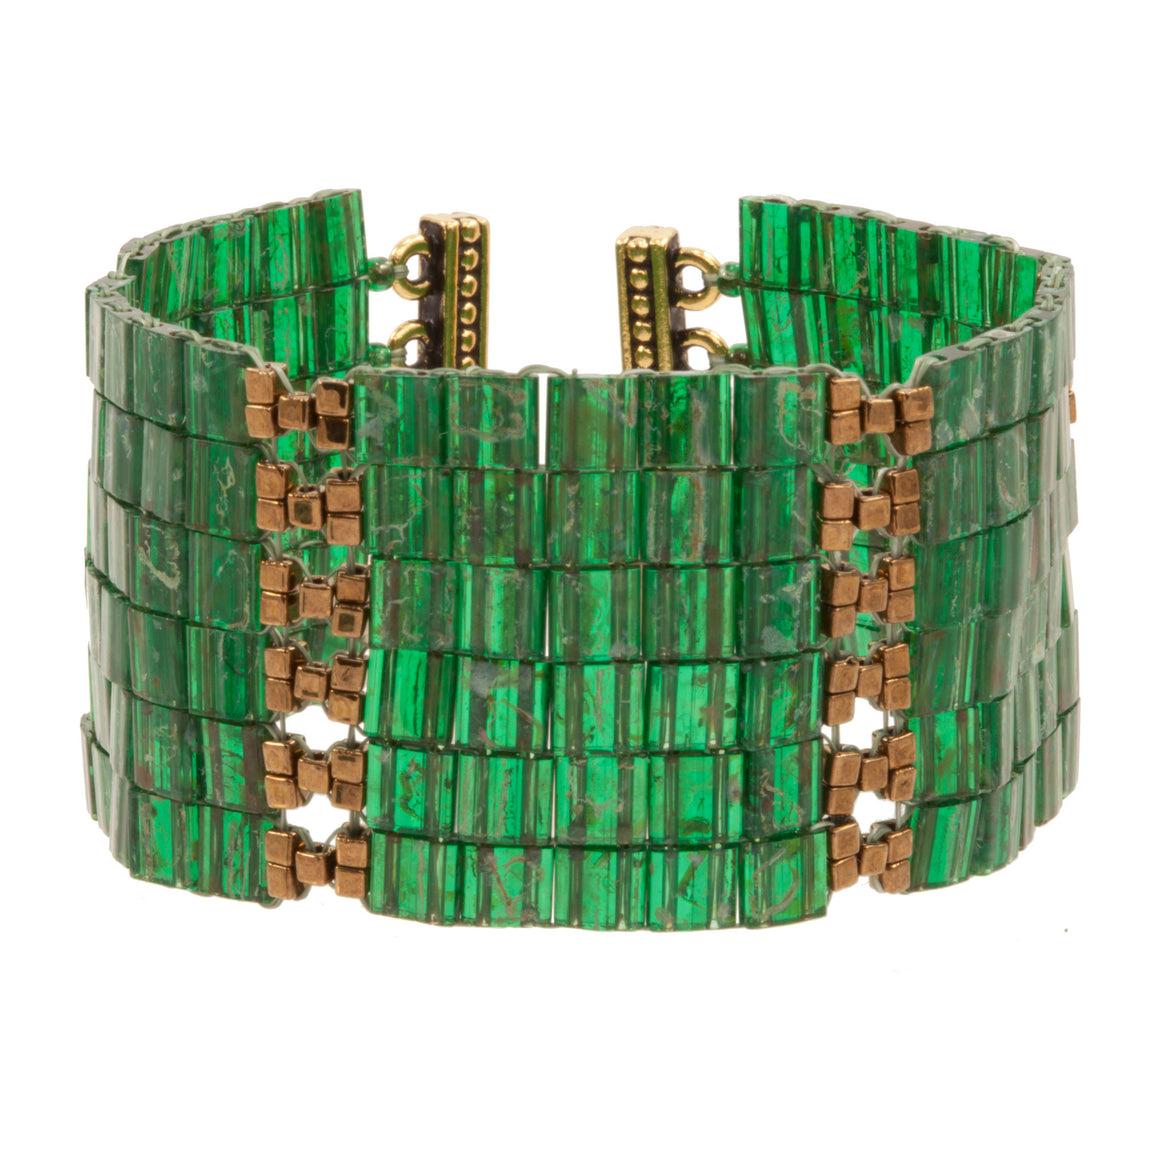 CLEOPATRA CROSS HATCH | CUFF | ADJUSTABLE